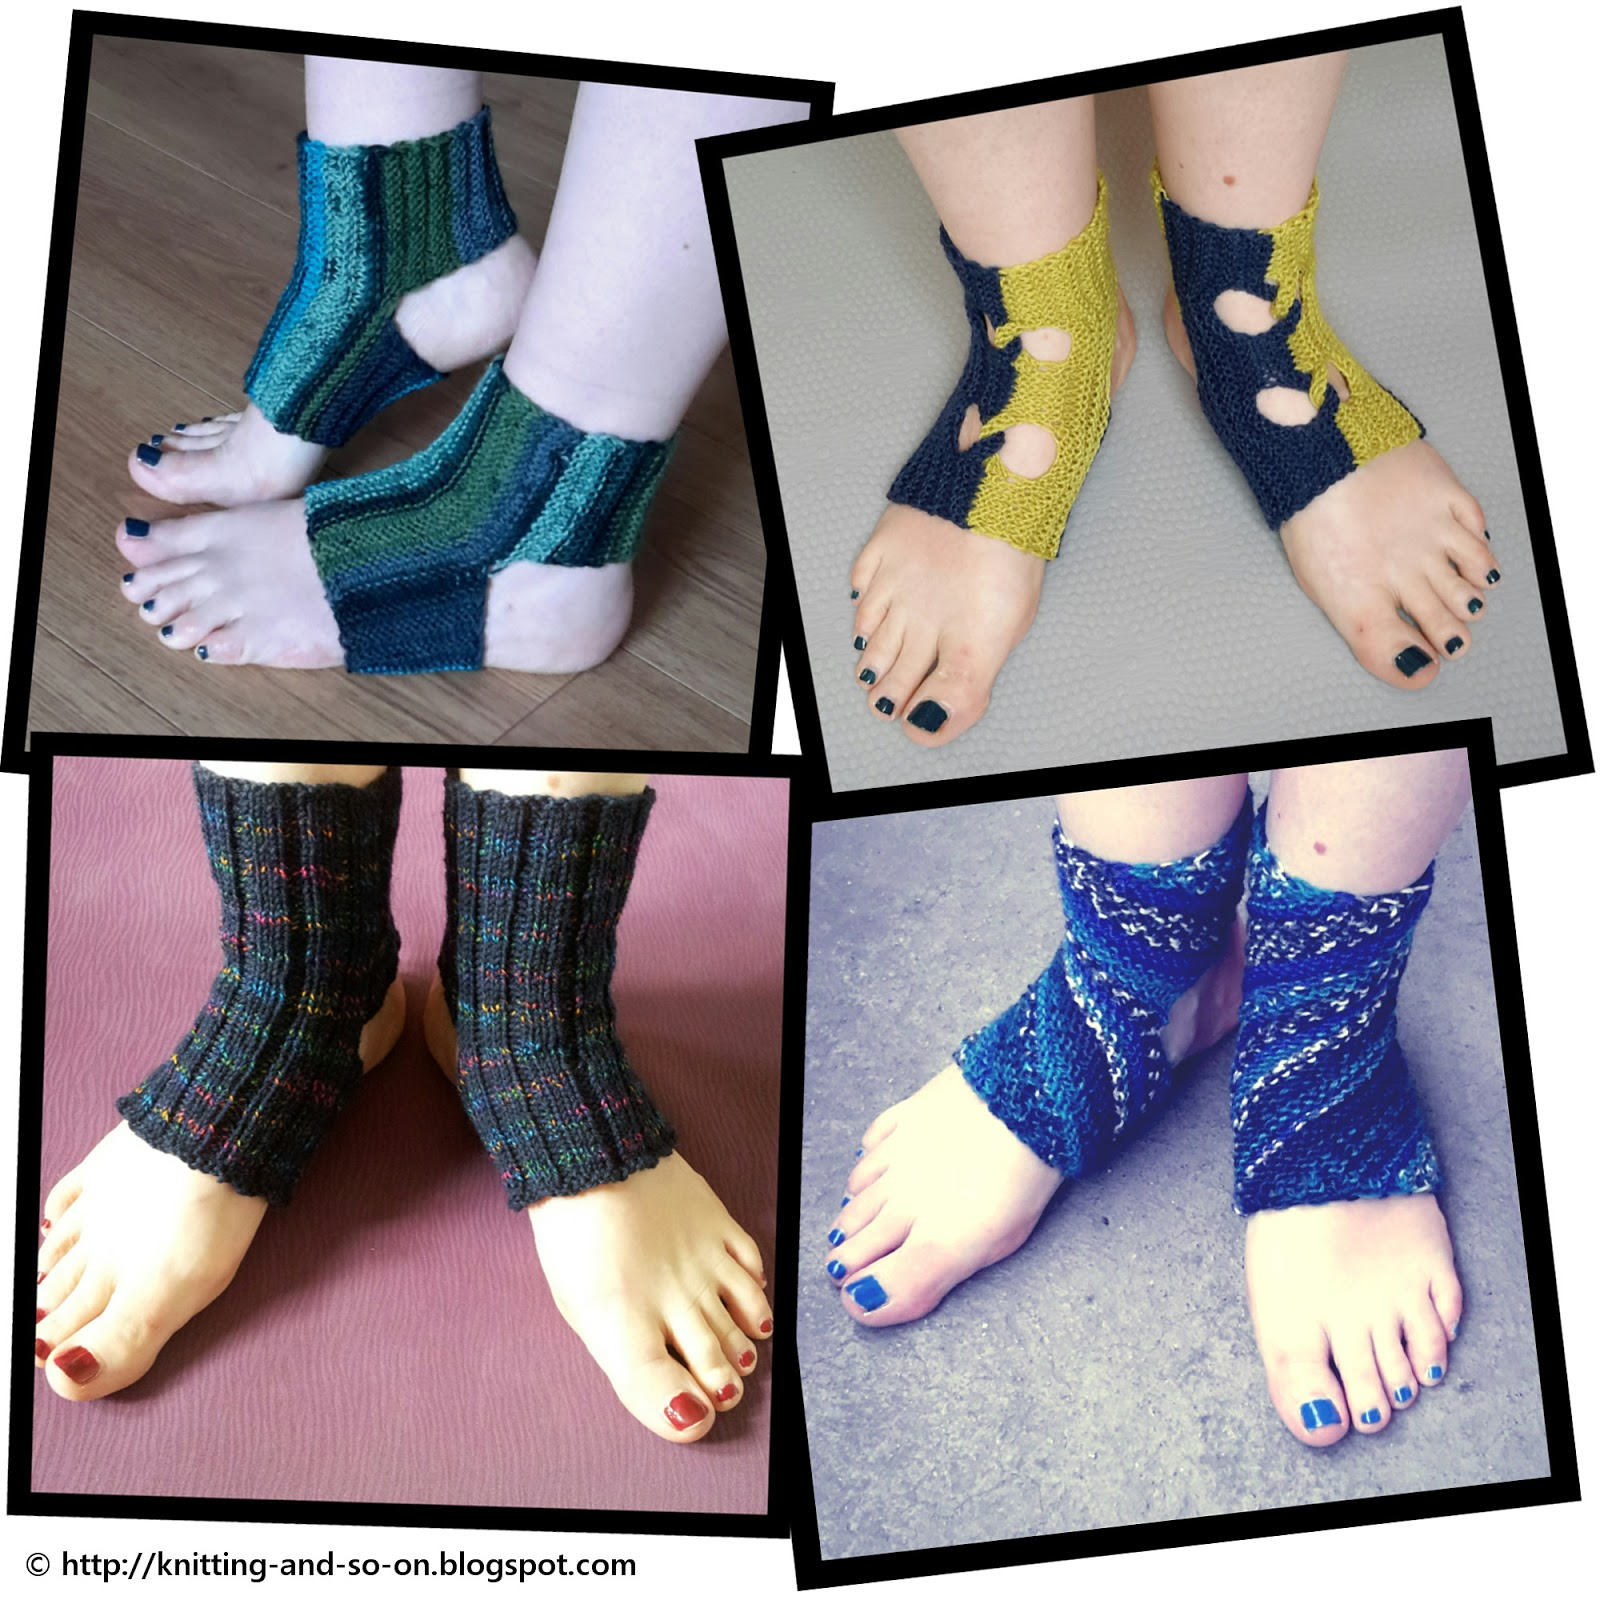 Knitting Patterns For Yoga Socks : Knitting and so on: Patterns